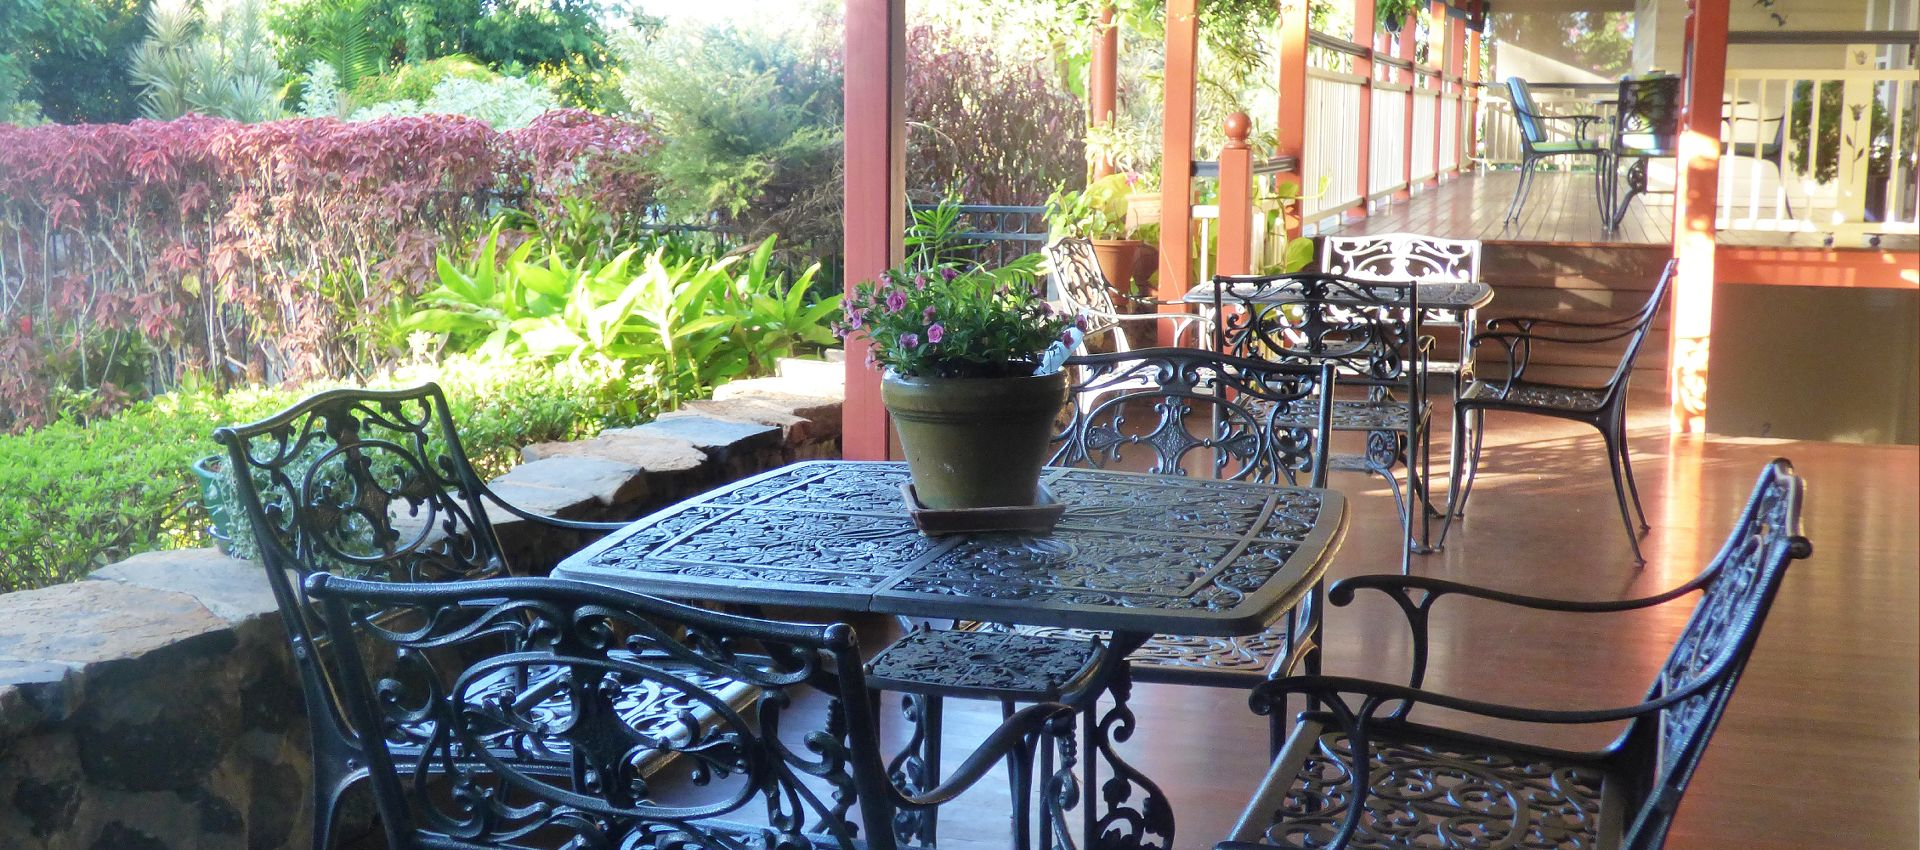 Bed and Breakfast Yungaburra Atherton Tablelands